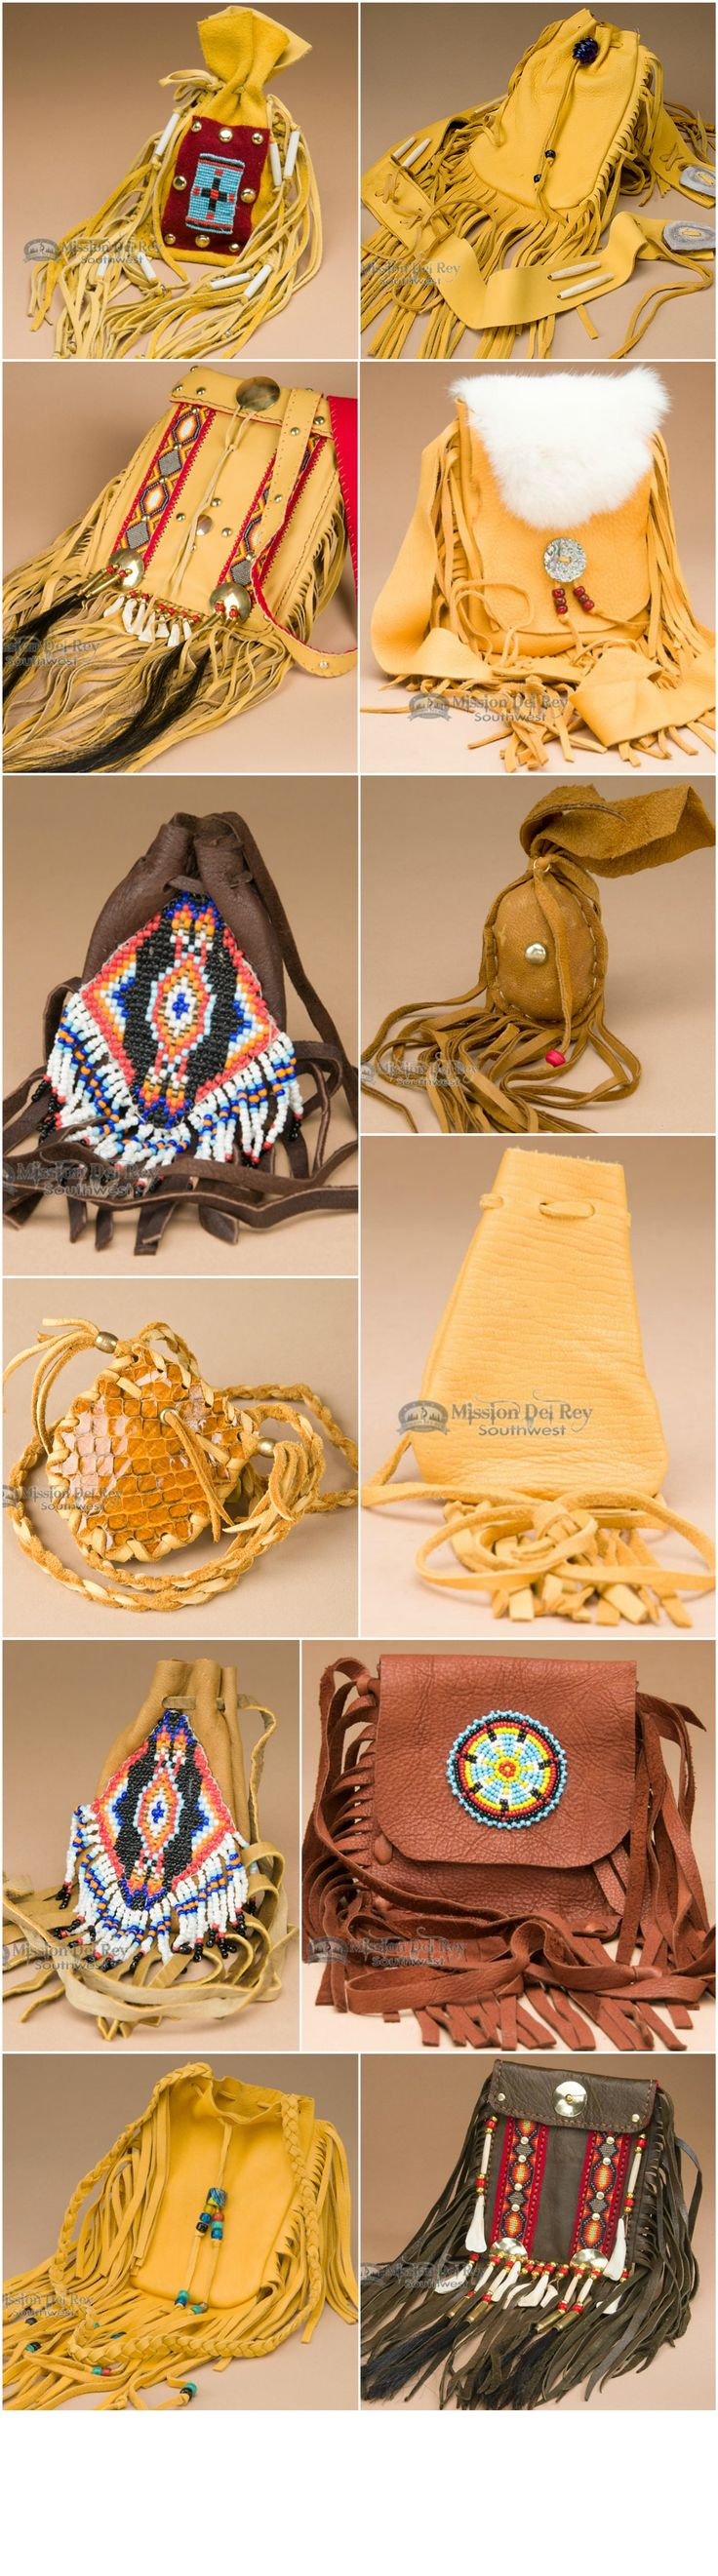 Native American medicine bags continue to be a popular part of Native life. Leather medicine pouches made with soft deer hide buckskin, elk or buffalo have become the most prevalent among American Indians.  See our entire gallery of Native American bags at http://www.missiondelrey.com/native-american-medicine-bags/